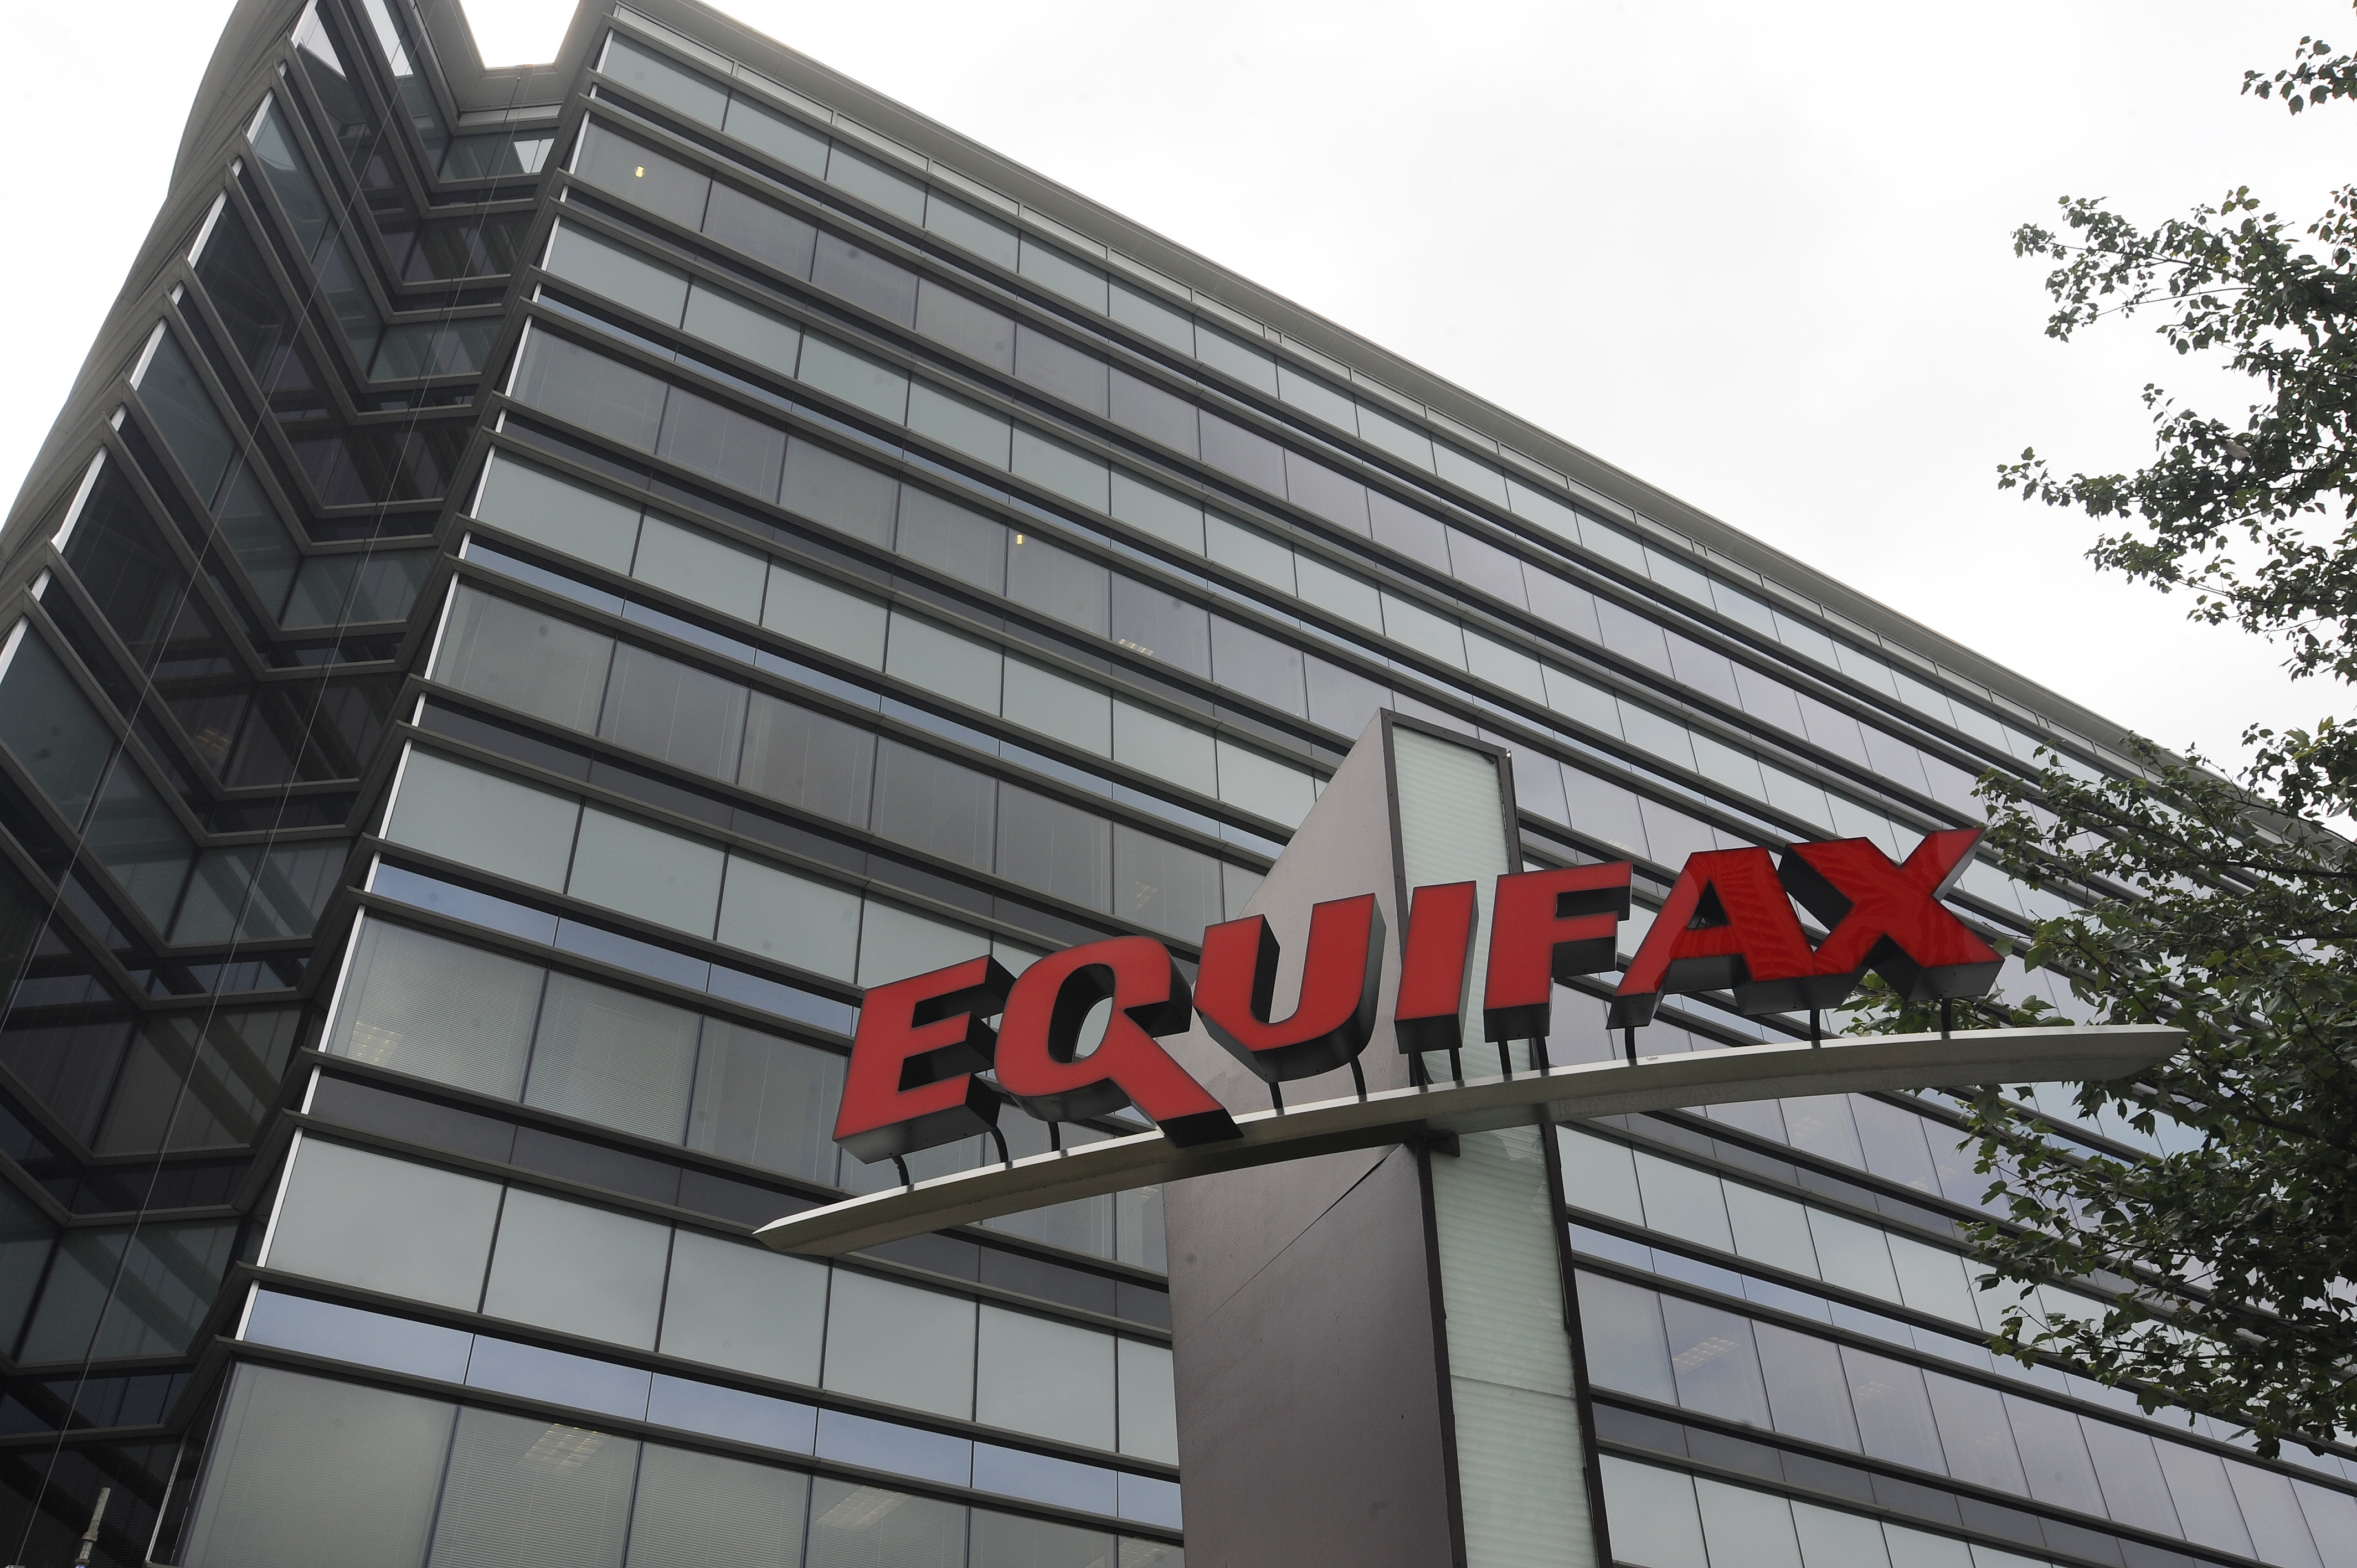 This July 21, 2012, photo shows Equifax Inc., offices in Atlanta. (Mike Stewart/AP)